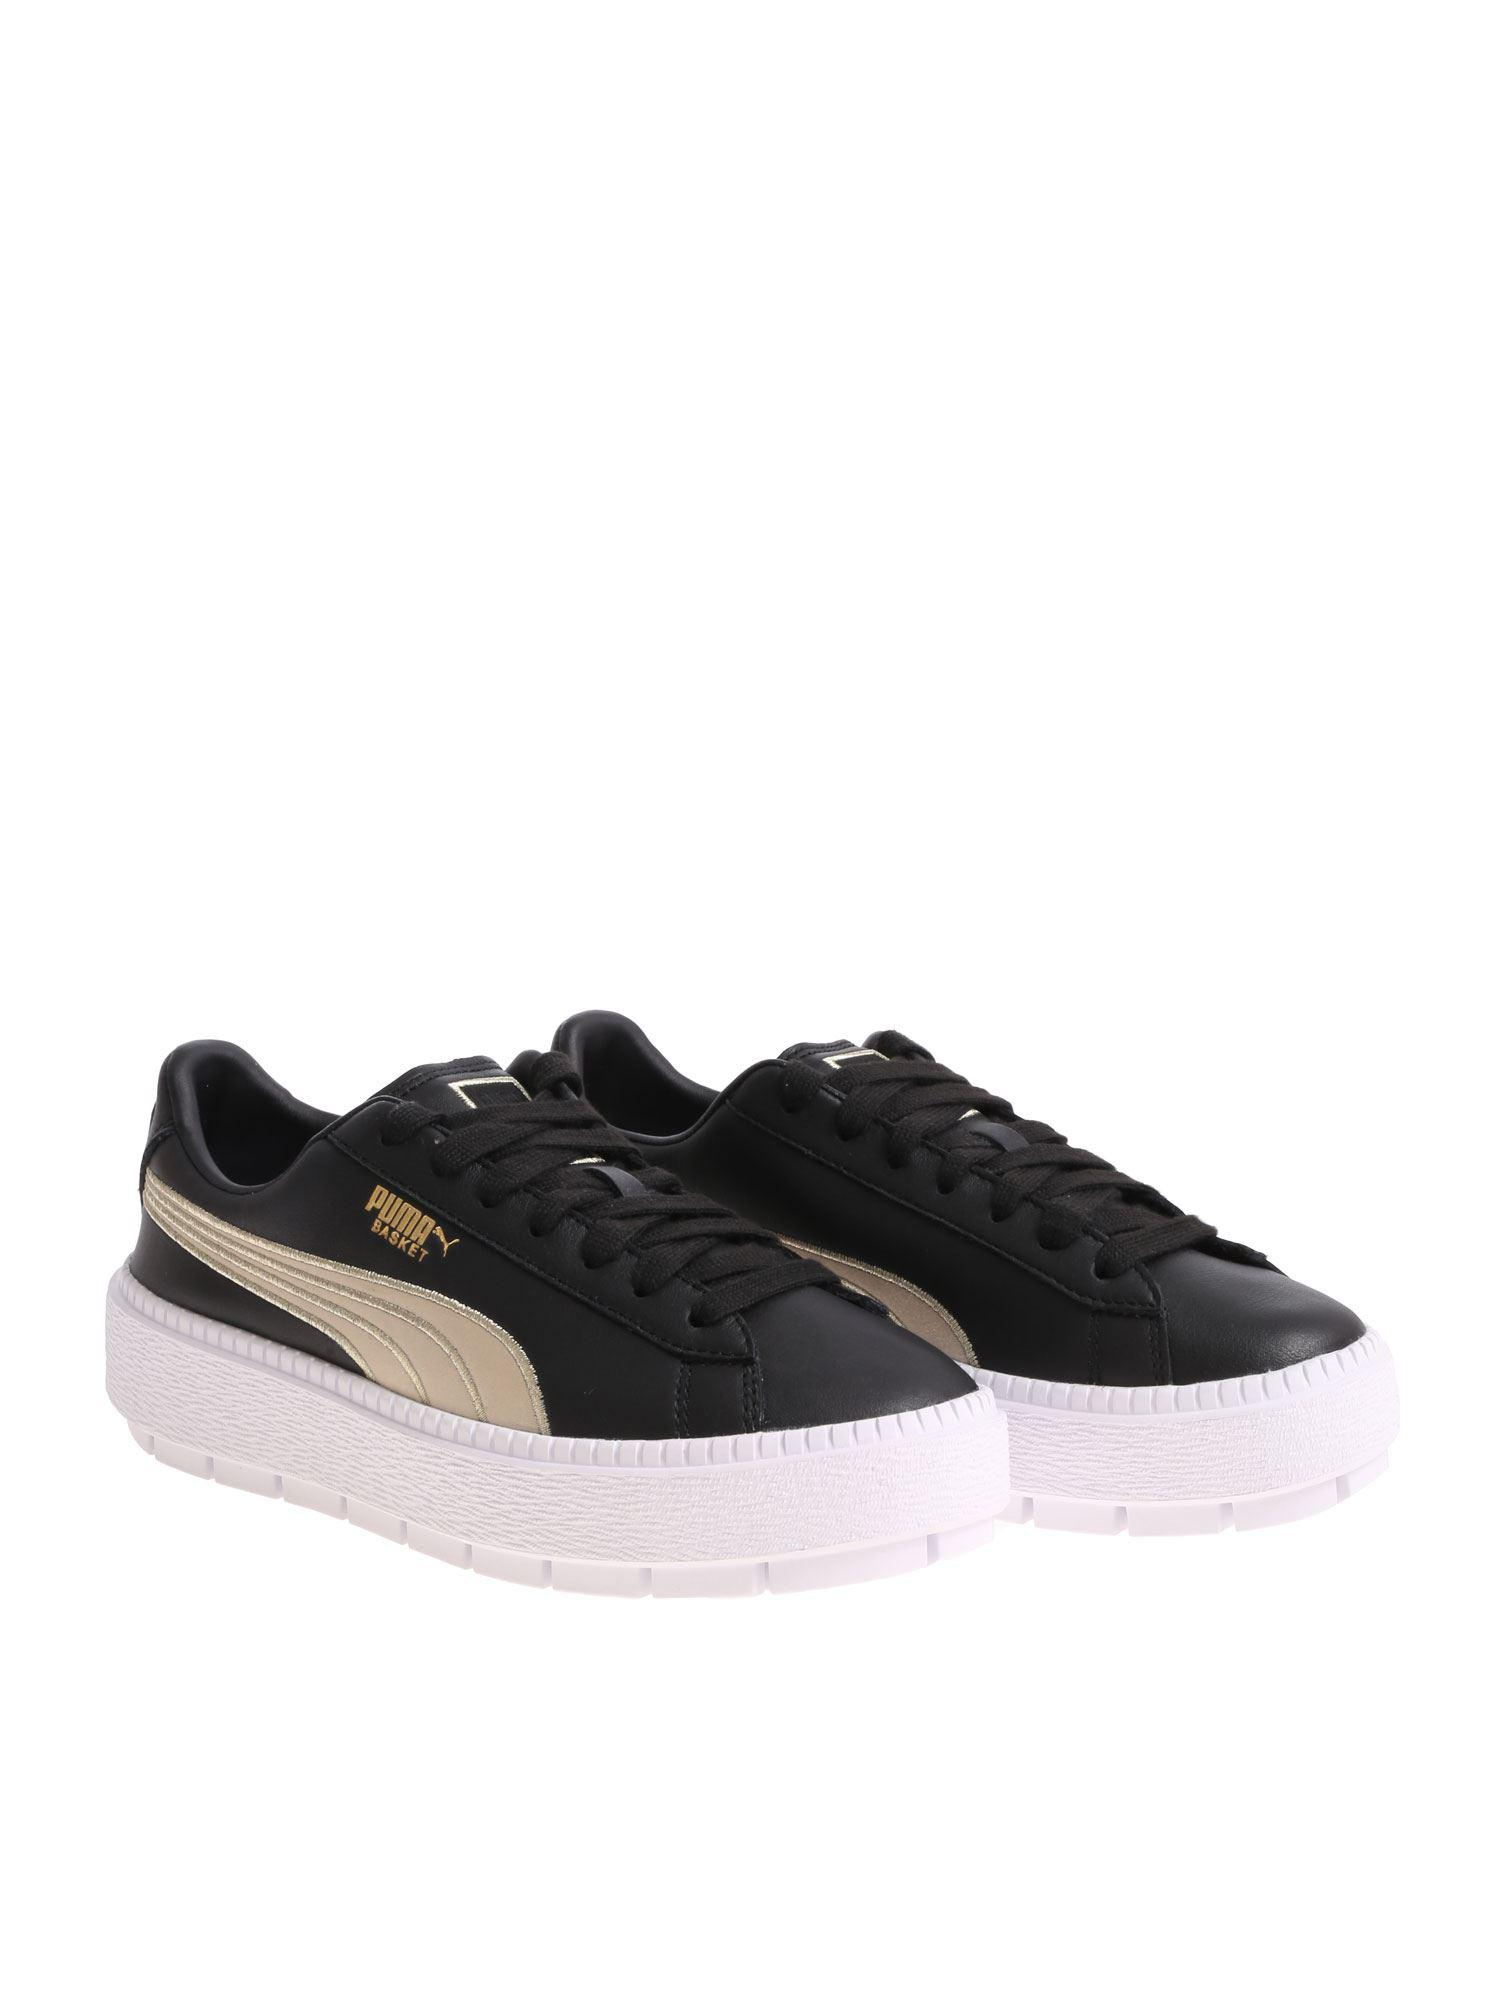 b86b60eb552 Lyst - PUMA Wn Platform Trace Bsqt.blk Shoes (trainers) in Black